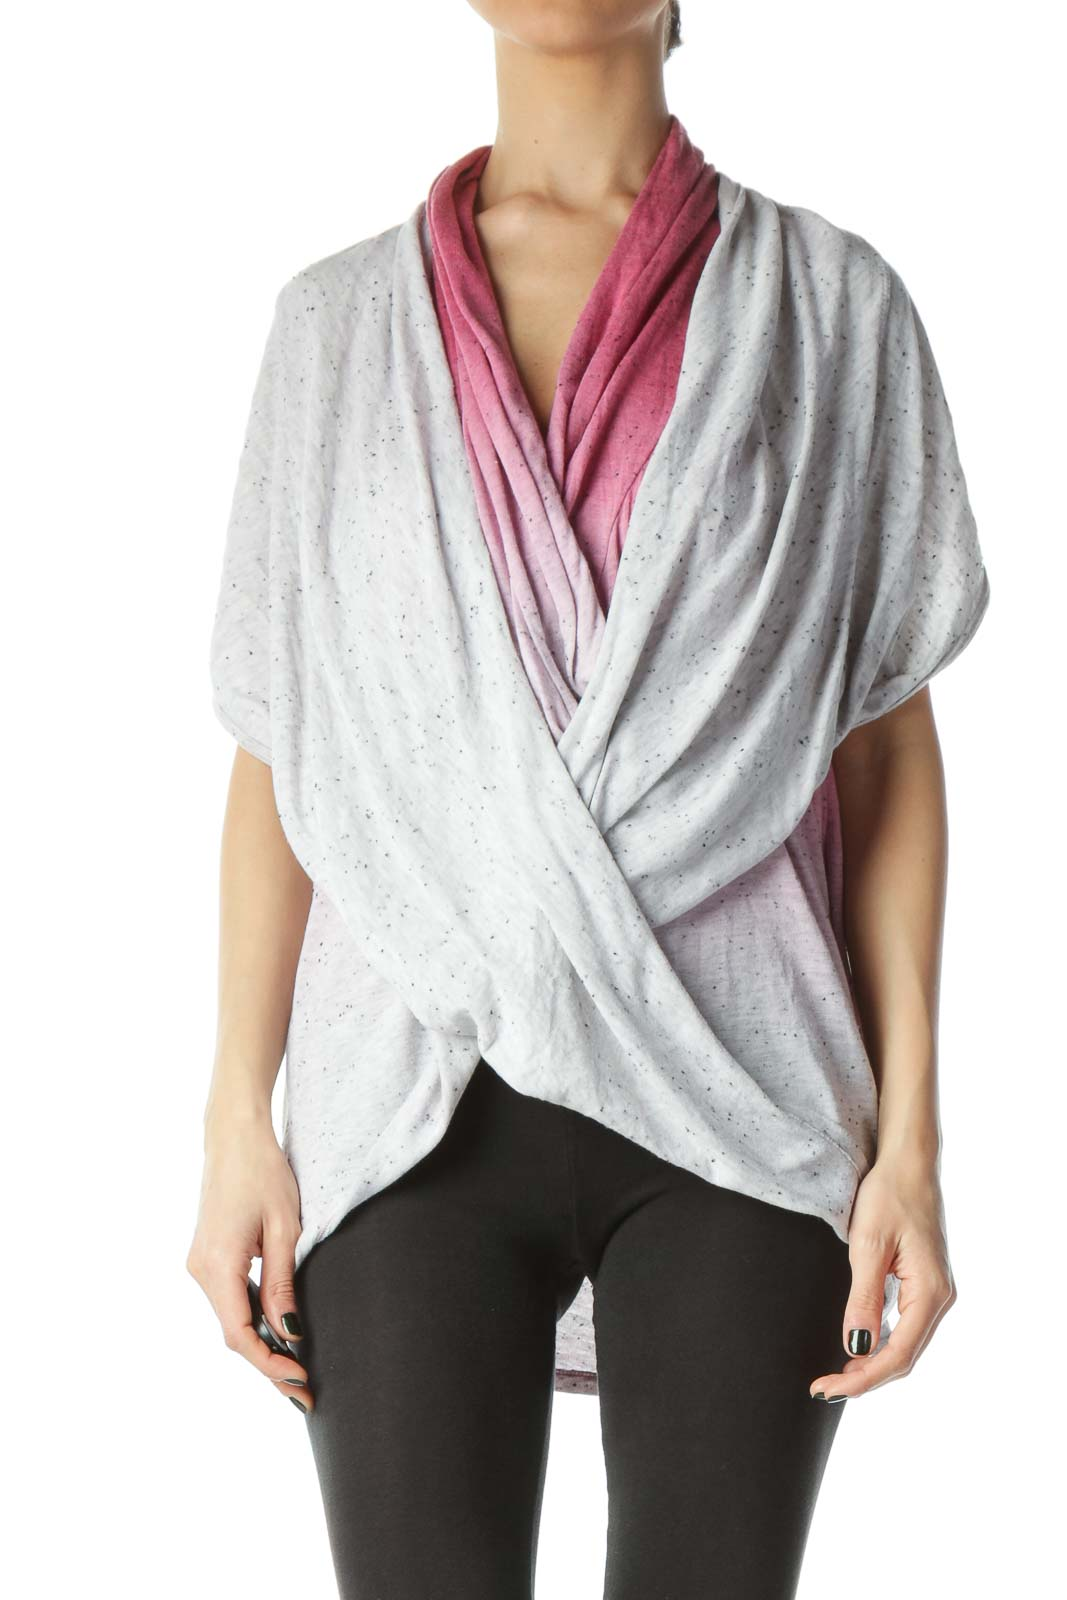 Pink Faded Design Textured Sleeveless Long Sweater